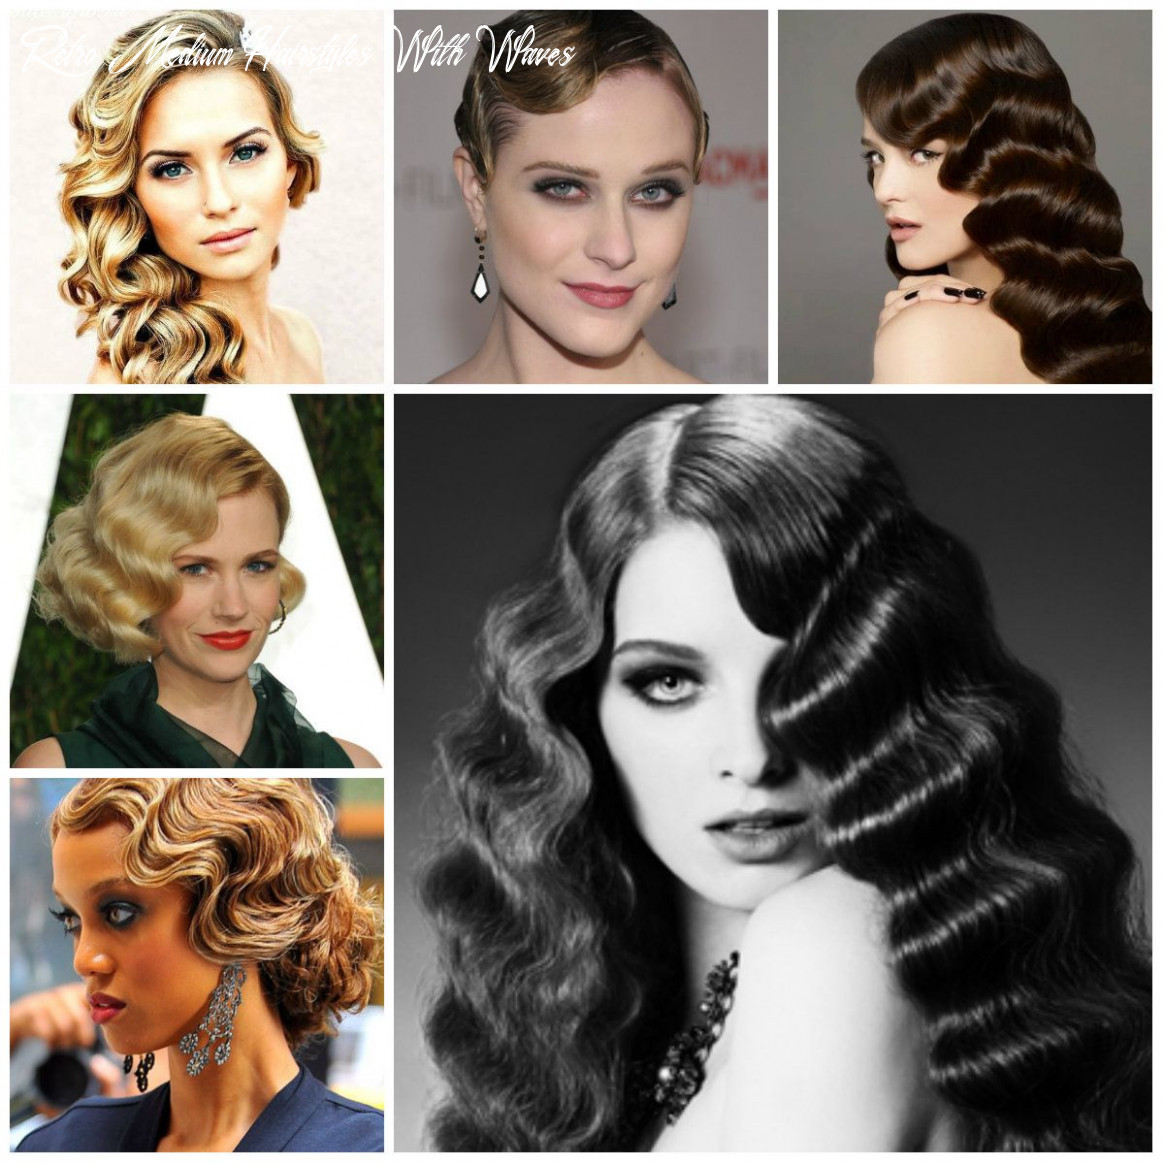 Vintage finger wave hairstyles to try in 11 | かわいい ヘア